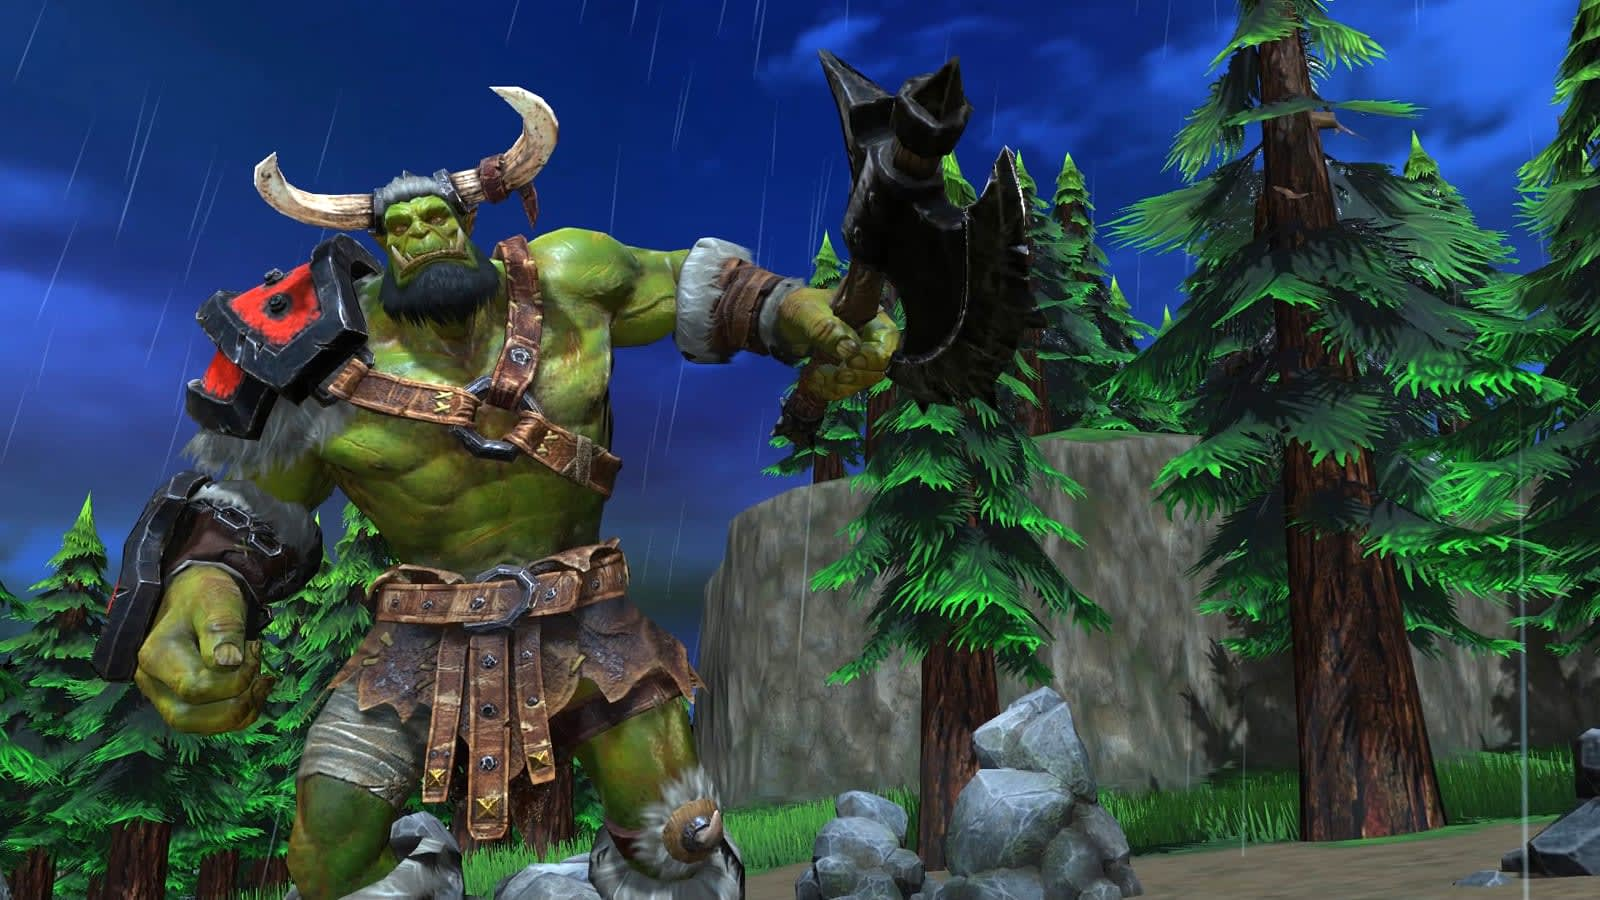 Warcraft III: Reforged' modernizes another real-time